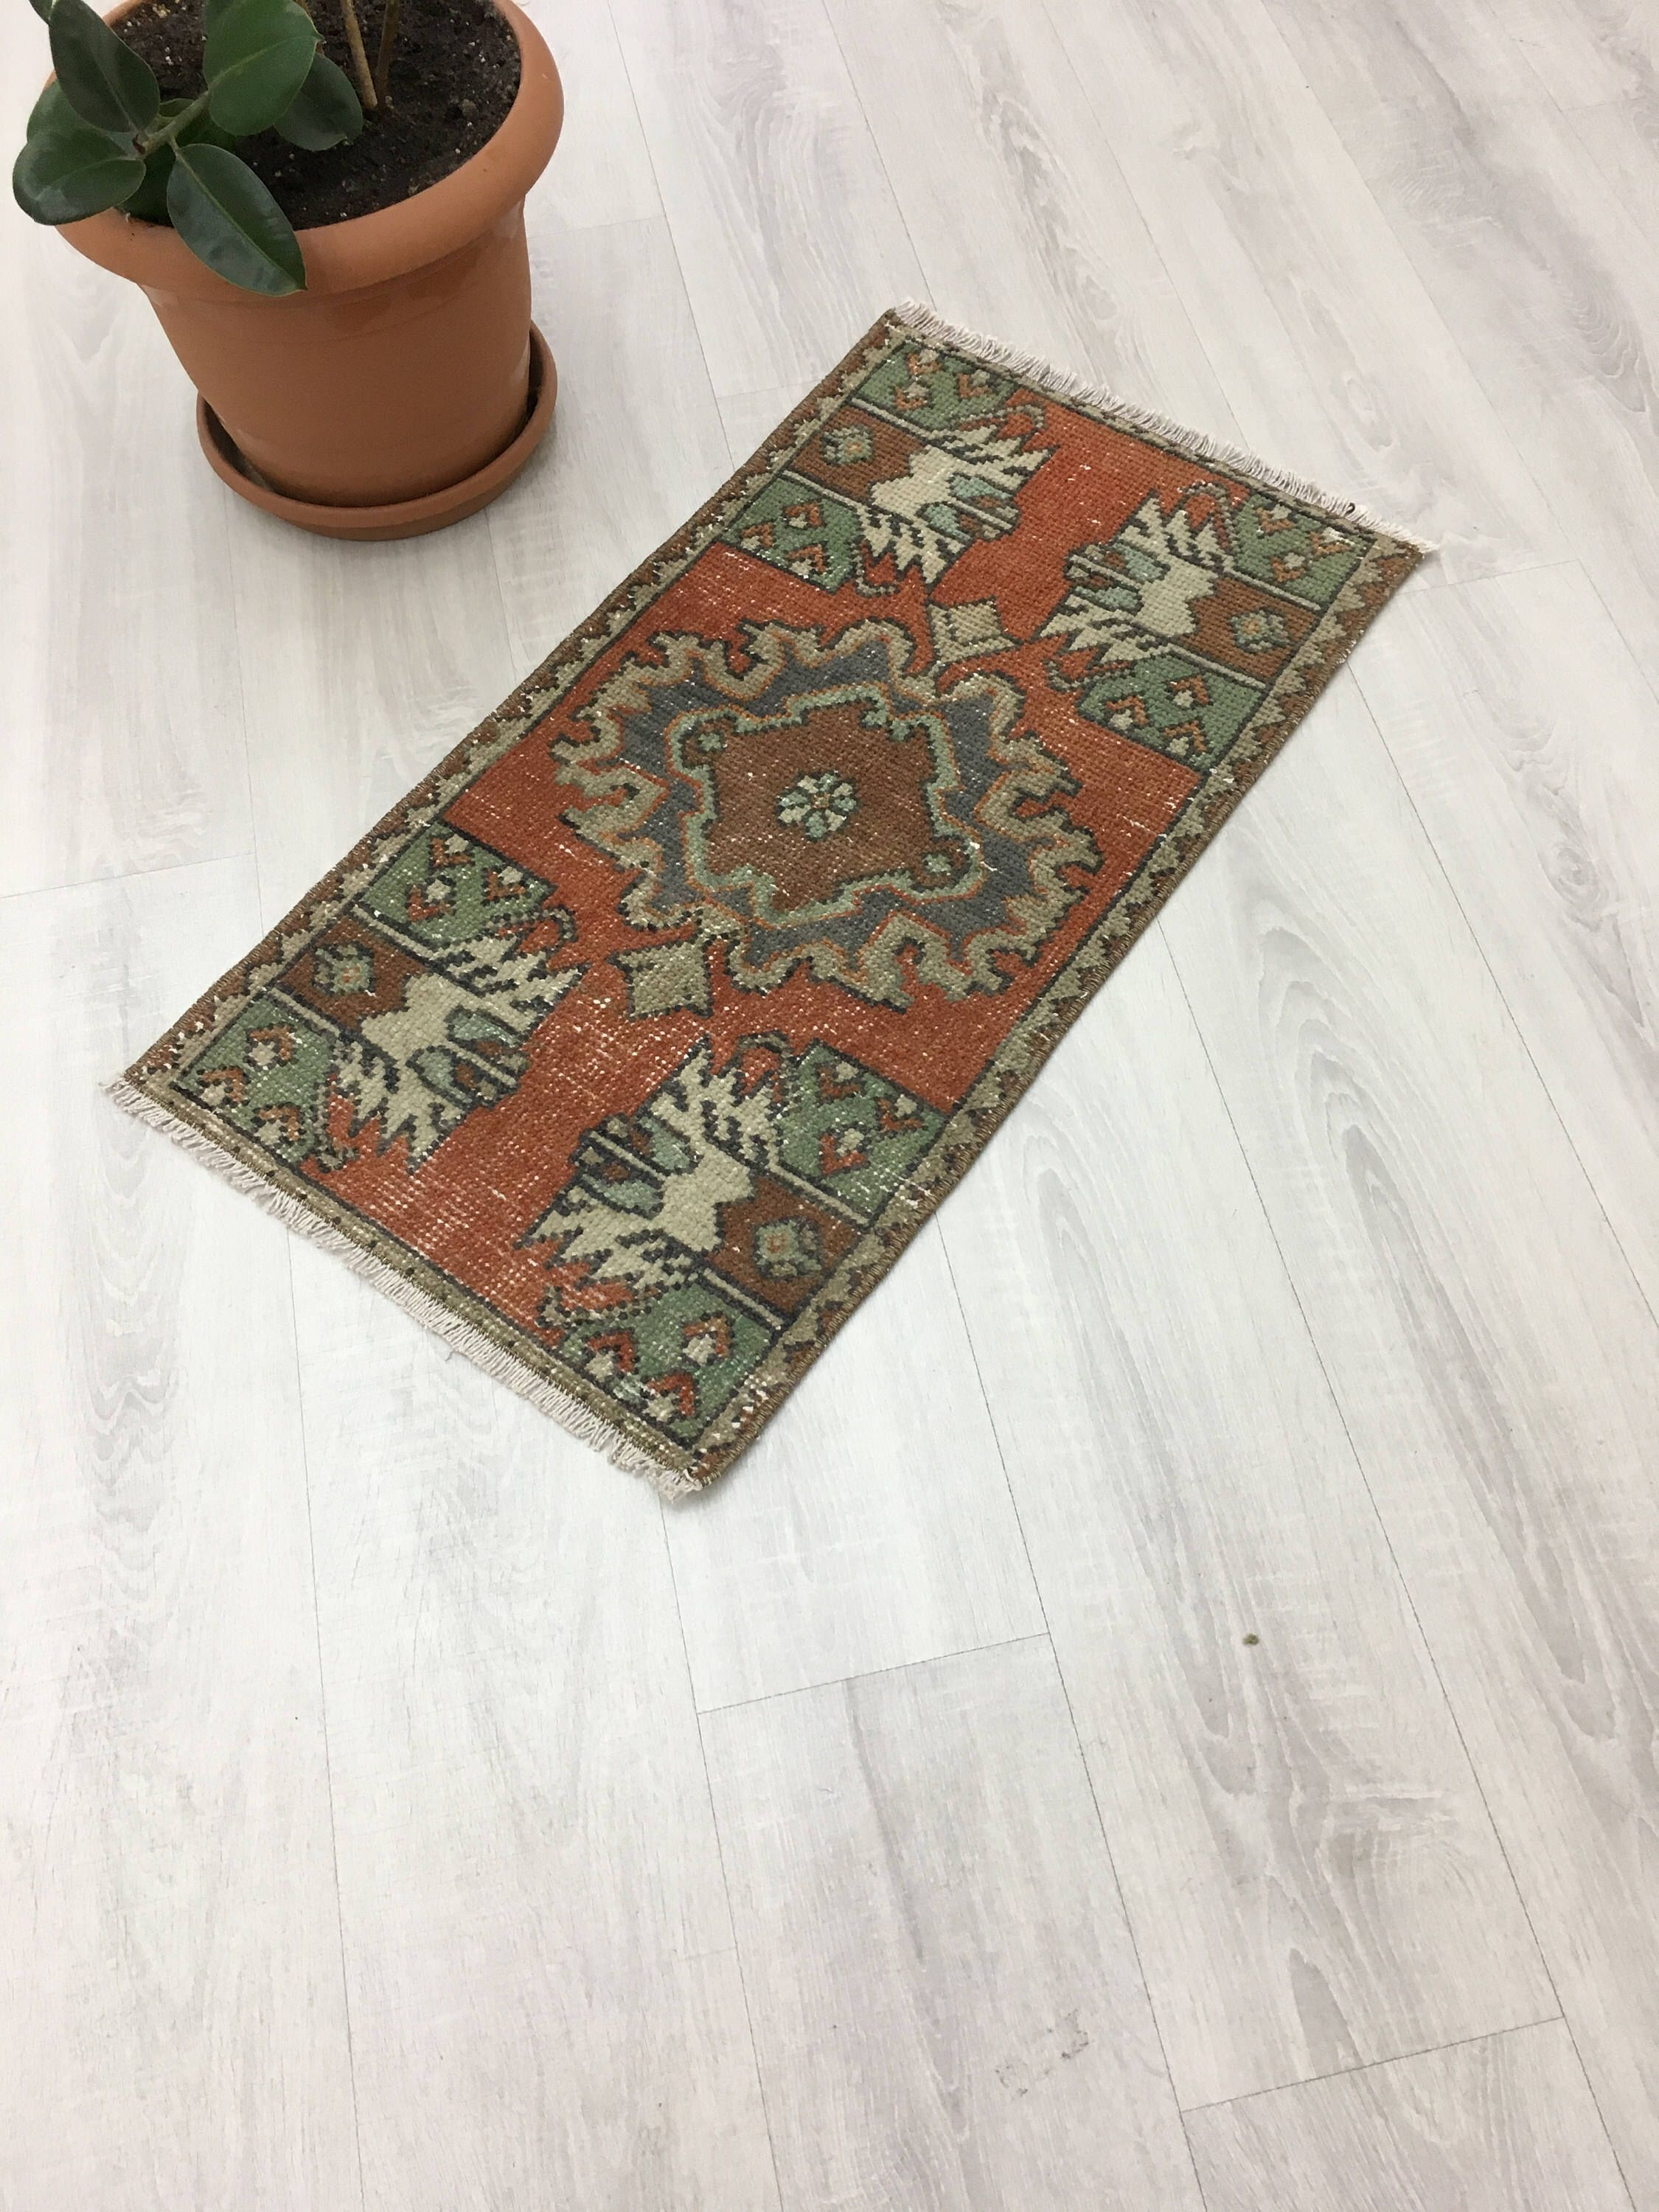 Rustic Country Style Vintage Small Turkish Rug Unique Nomadic Woven Low Pile Muted Yastik